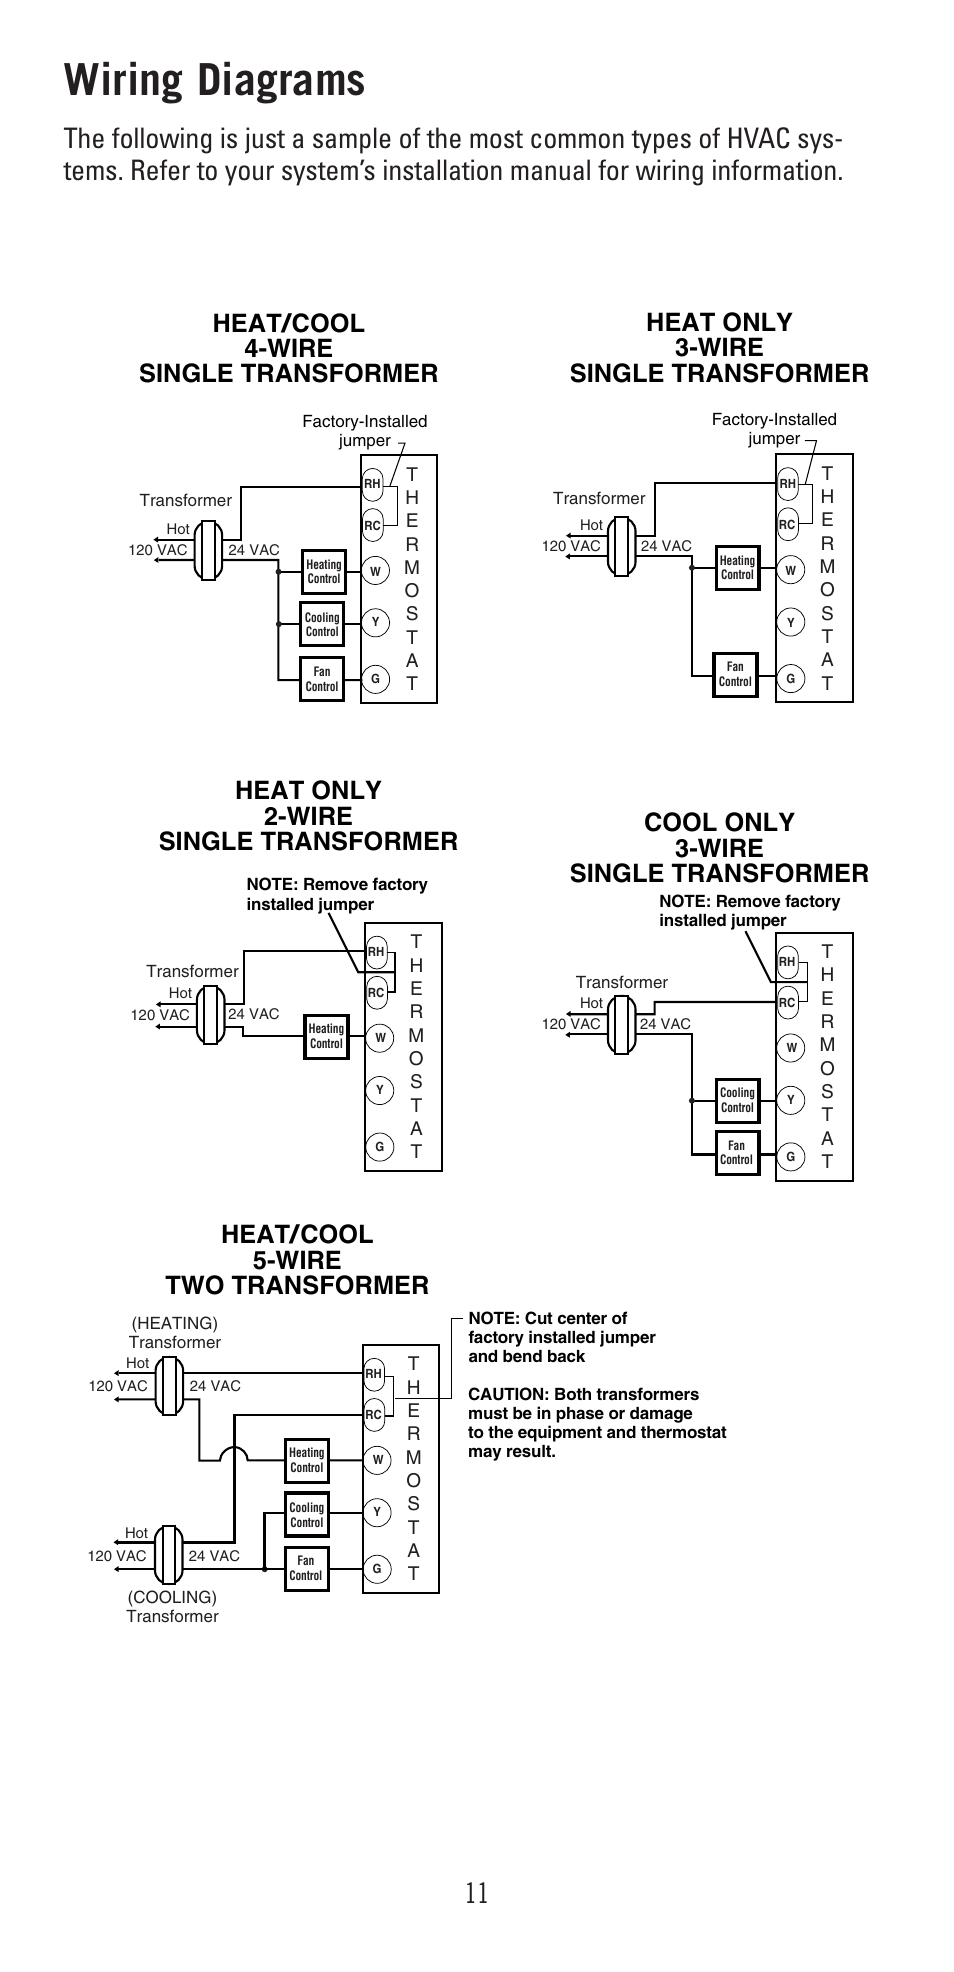 robert shaw thermostat wiring diagram wiring diagrams robertshaw 9600 user manual page 11 12  wiring diagrams robertshaw 9600 user